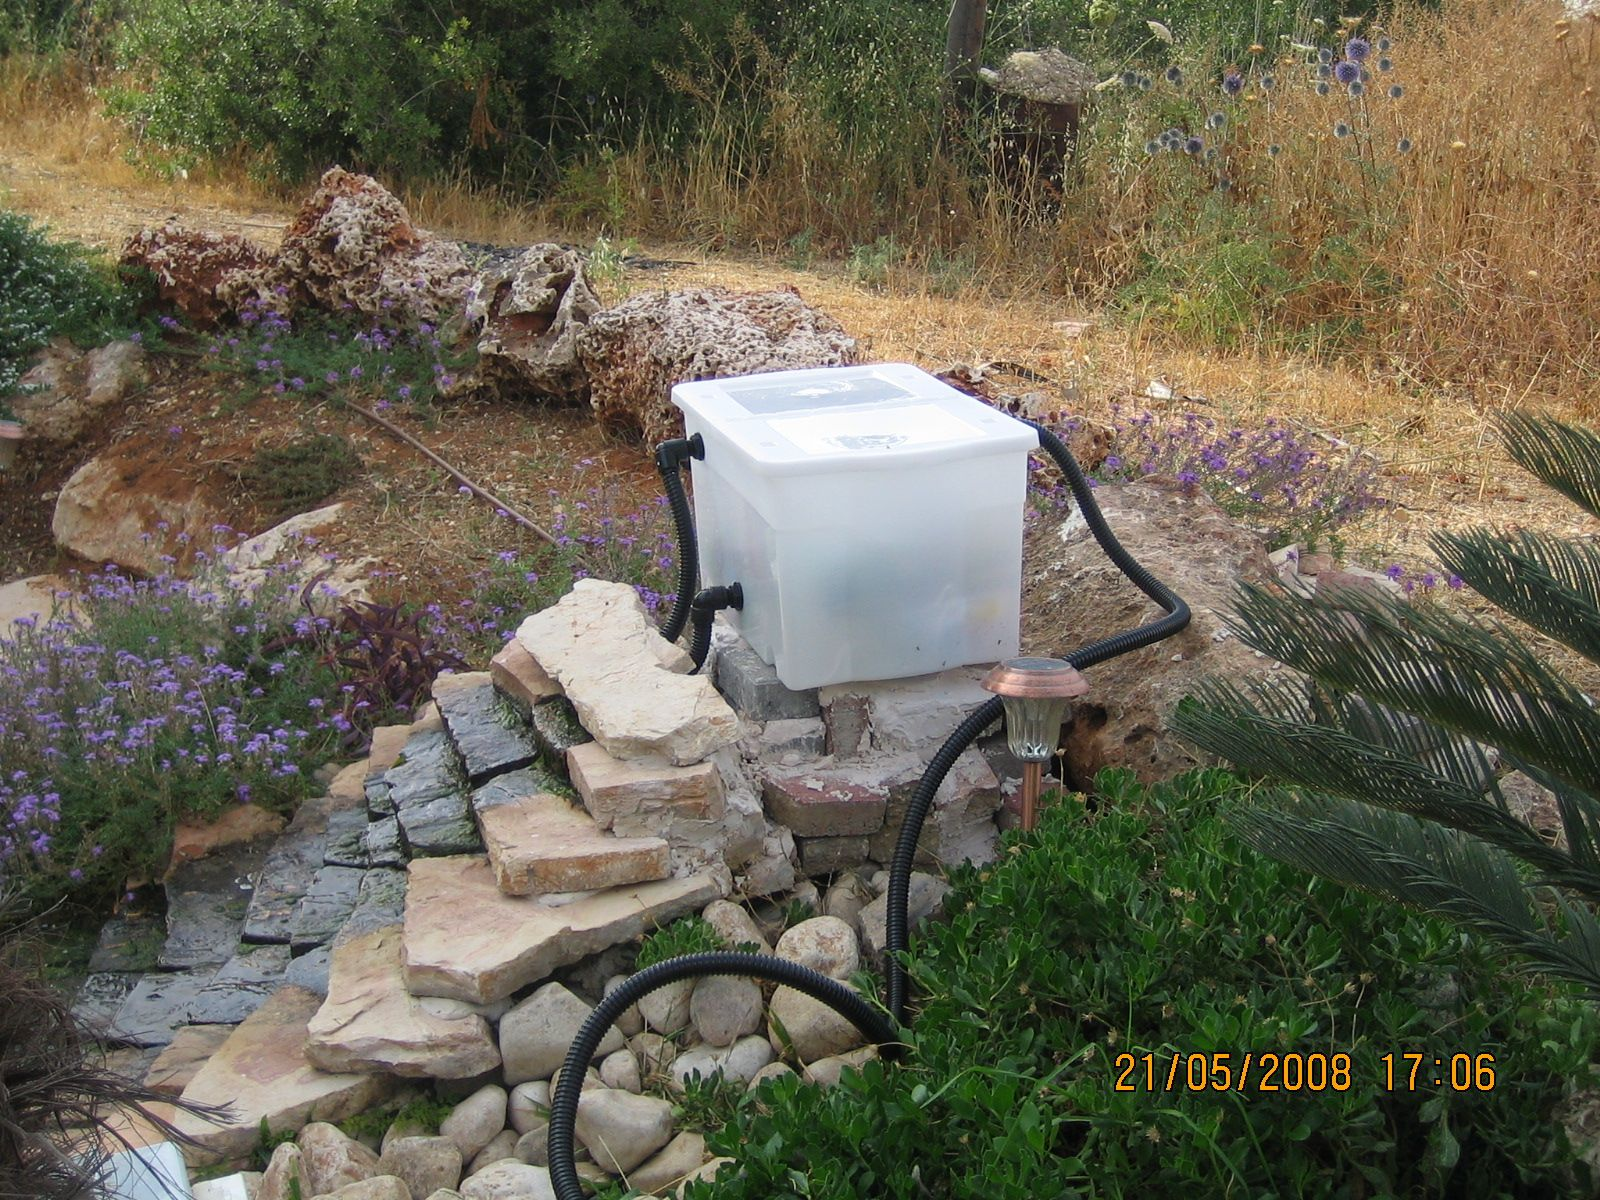 DIY How to Build a Gravitational Filter for a Koi Pond